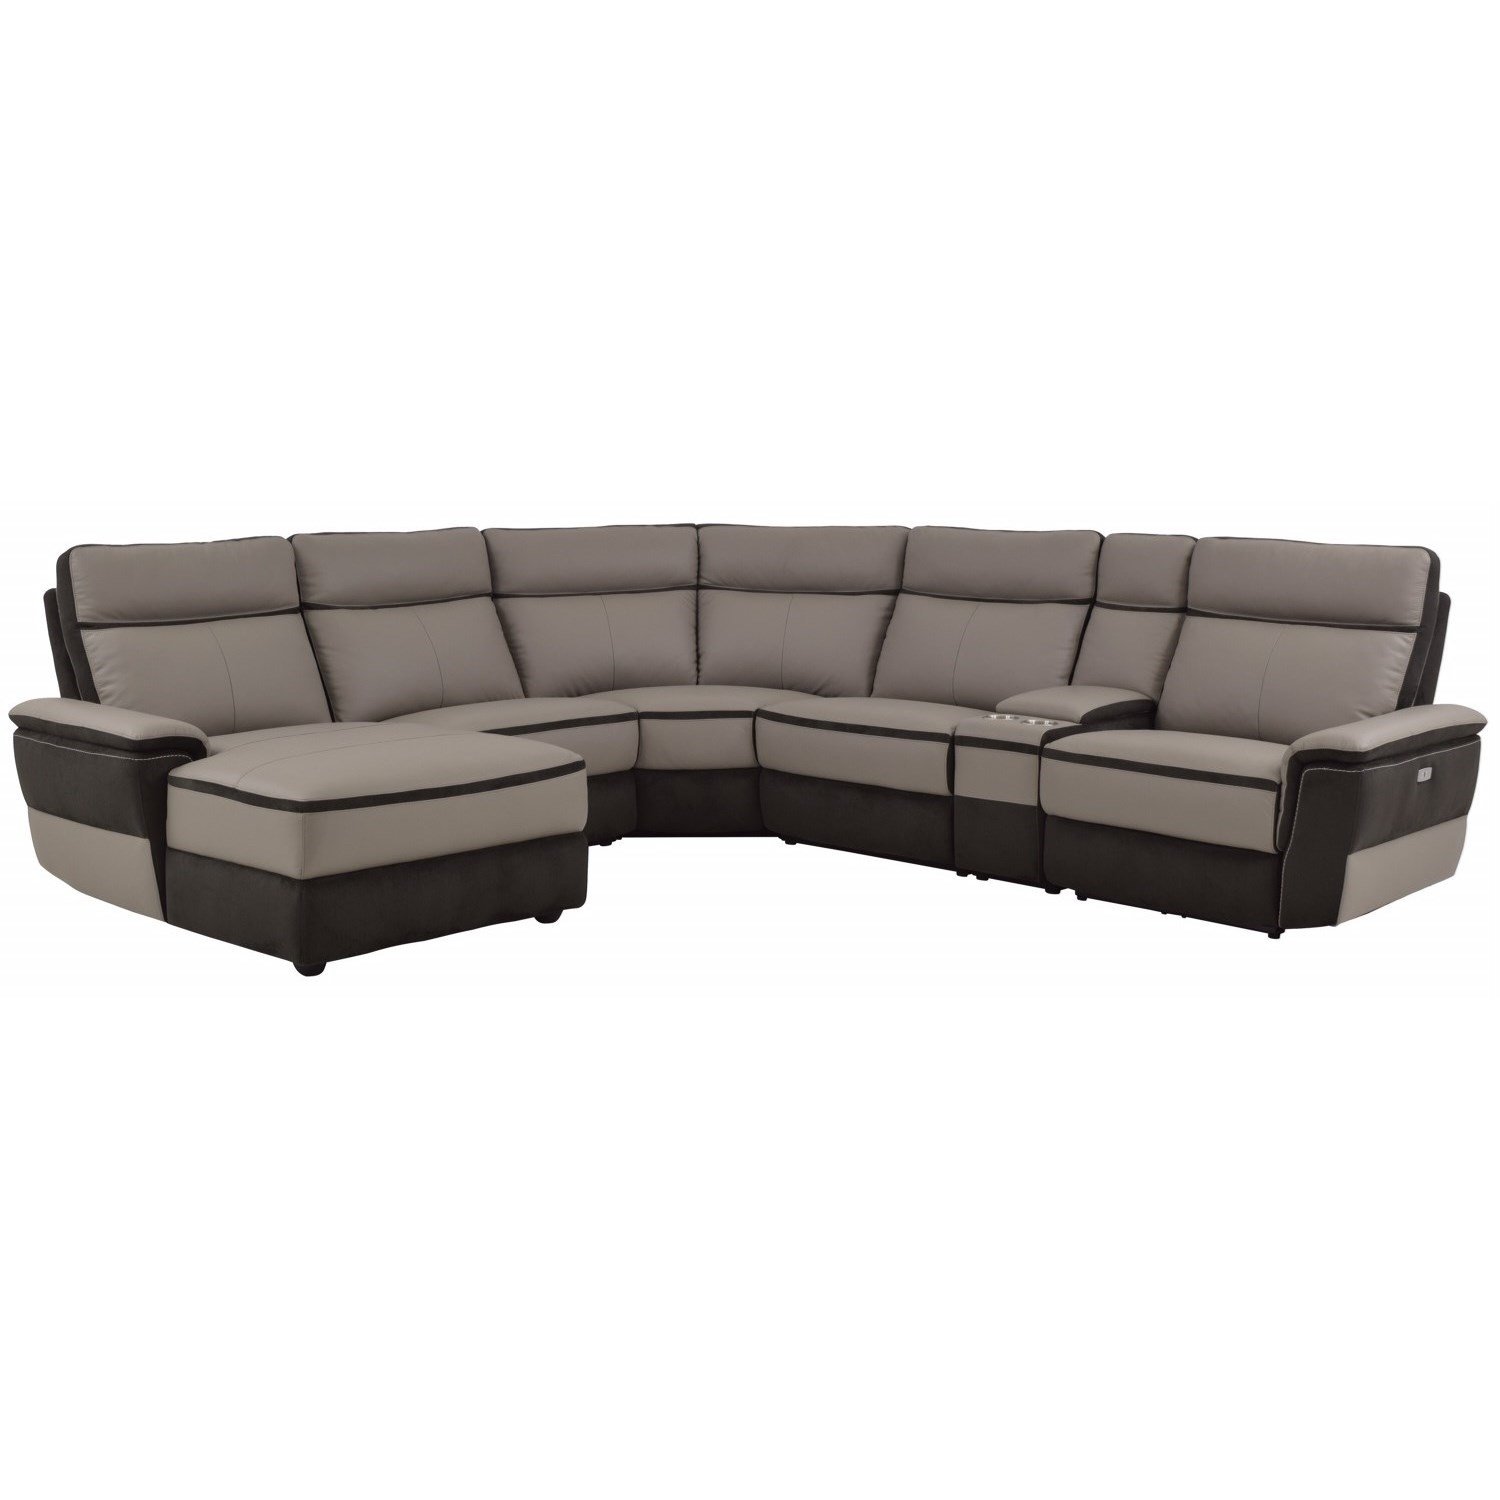 Homelegance Laertes Contemporary Power Reclining Sectional - Item Number: 8318-5L+AC+CR+AC+CN+RRPW